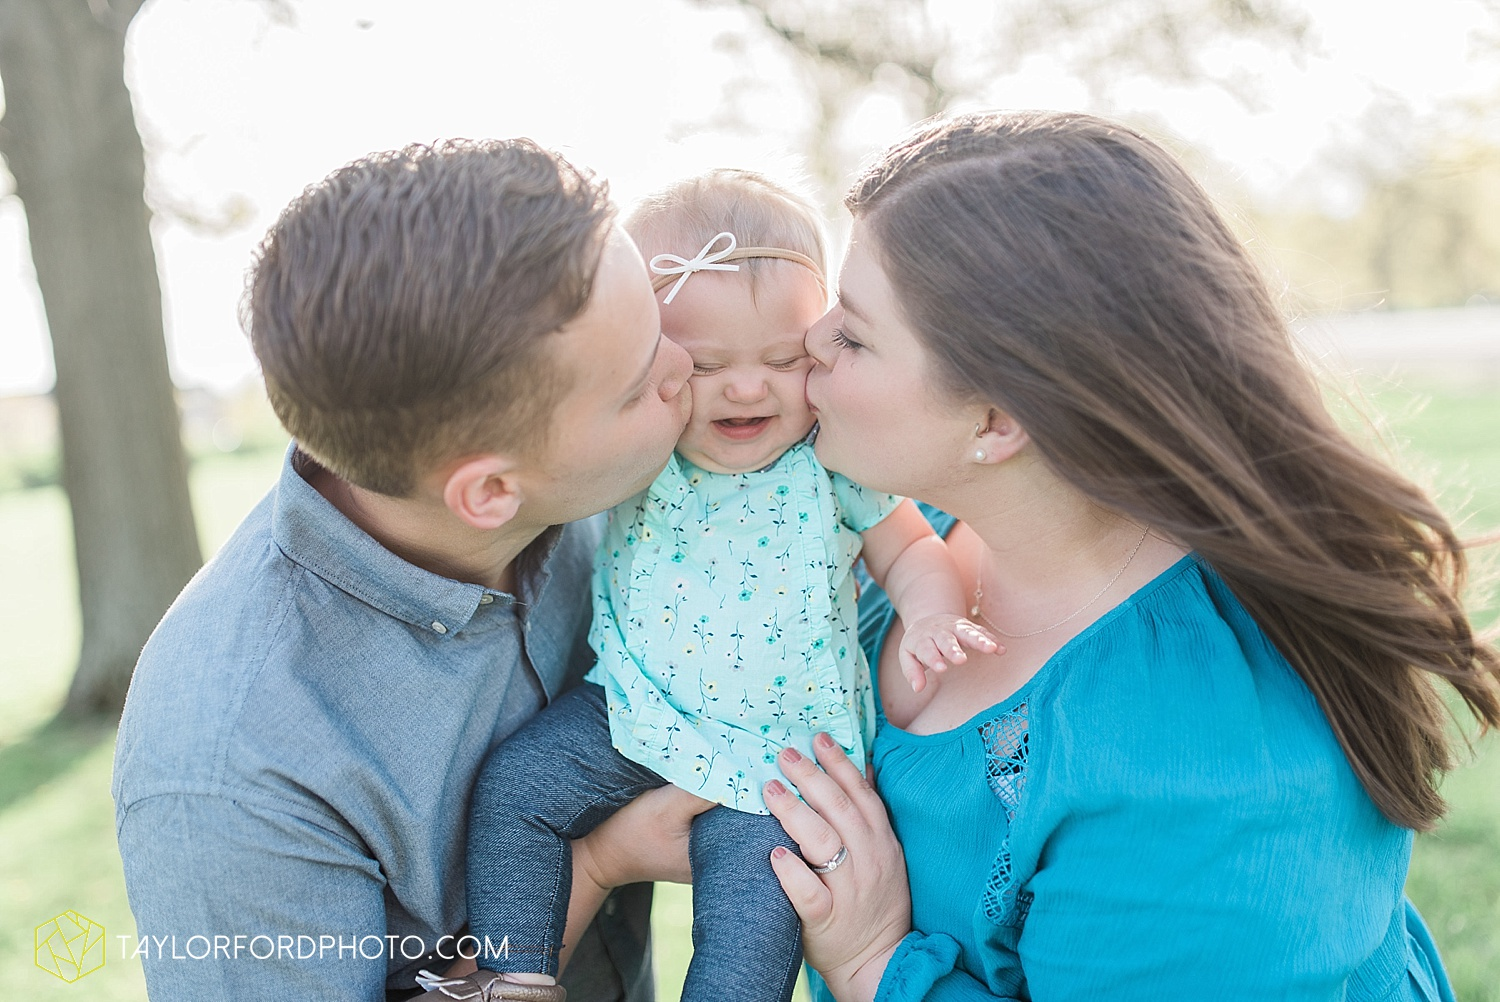 fort-wayne-indiana-family-photographer-taylor-ford-photography-van-wert-lima-ohio-soaff-park_1557.jpg